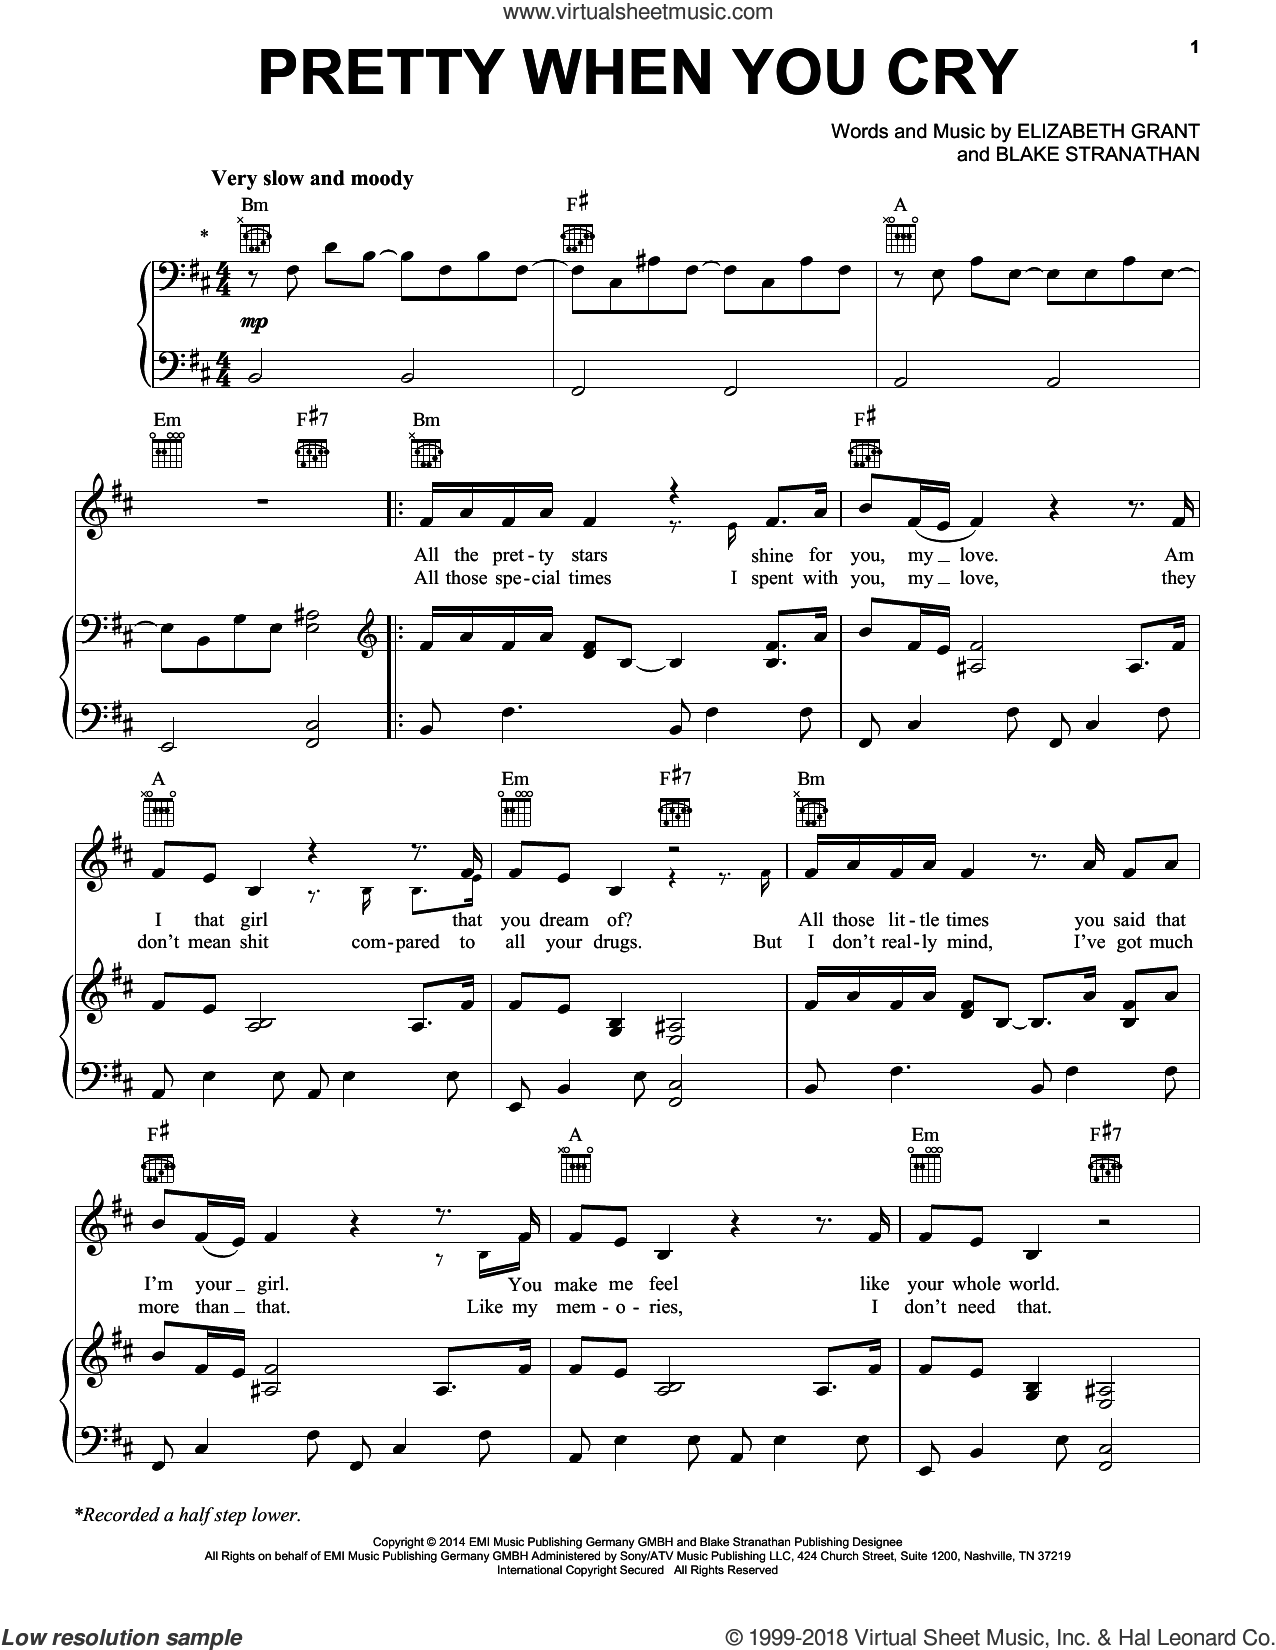 Pretty When You Cry sheet music for voice, piano or guitar by Lana Del Rey, Blake Stranathan and Elizabeth Grant, intermediate skill level